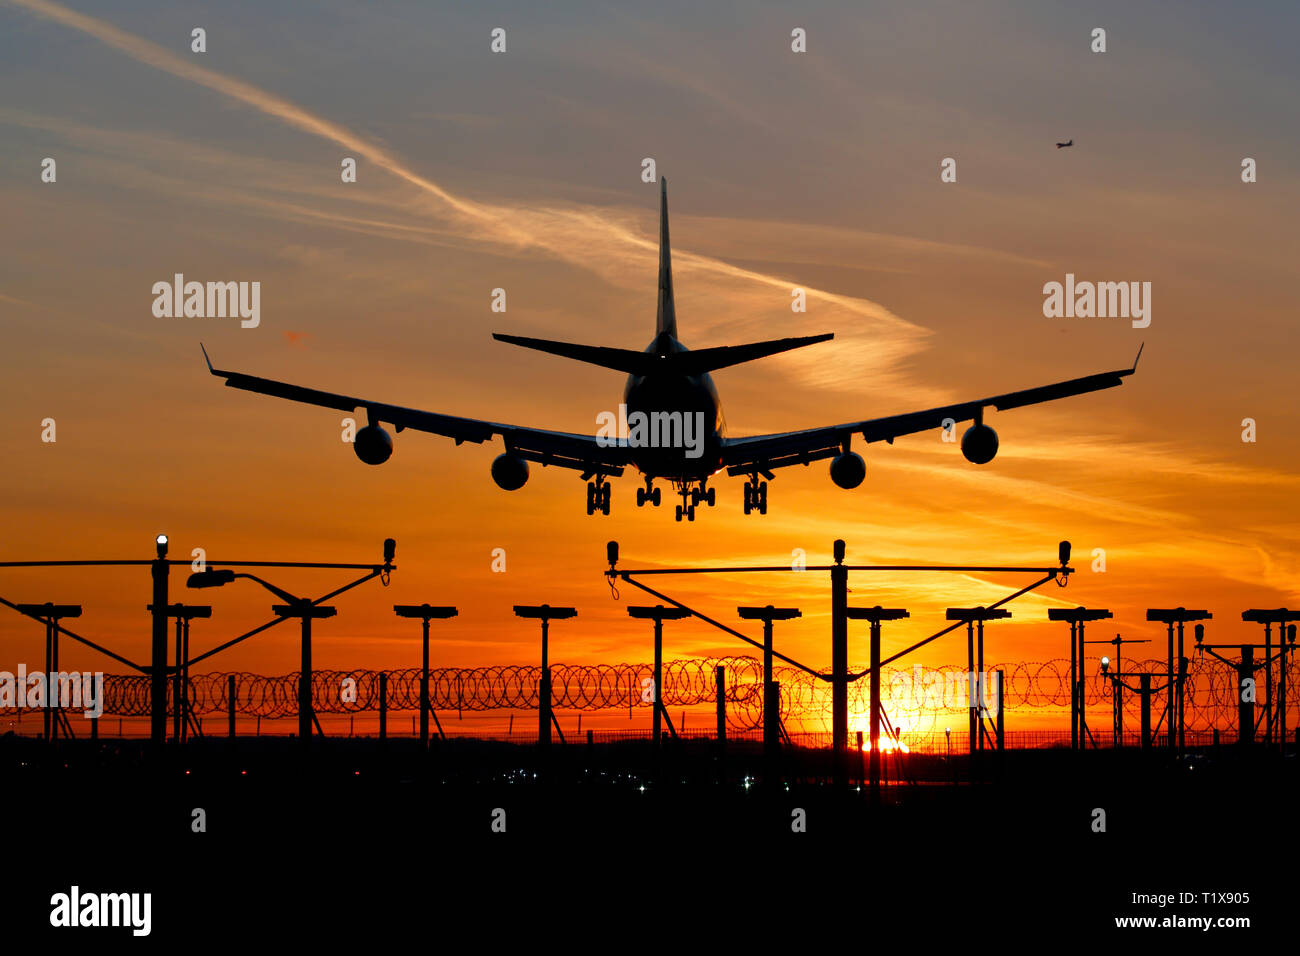 G-CIVE British Airways Boeing 747-400 airliner landing at Heathrow airport at sunset Stock Photo